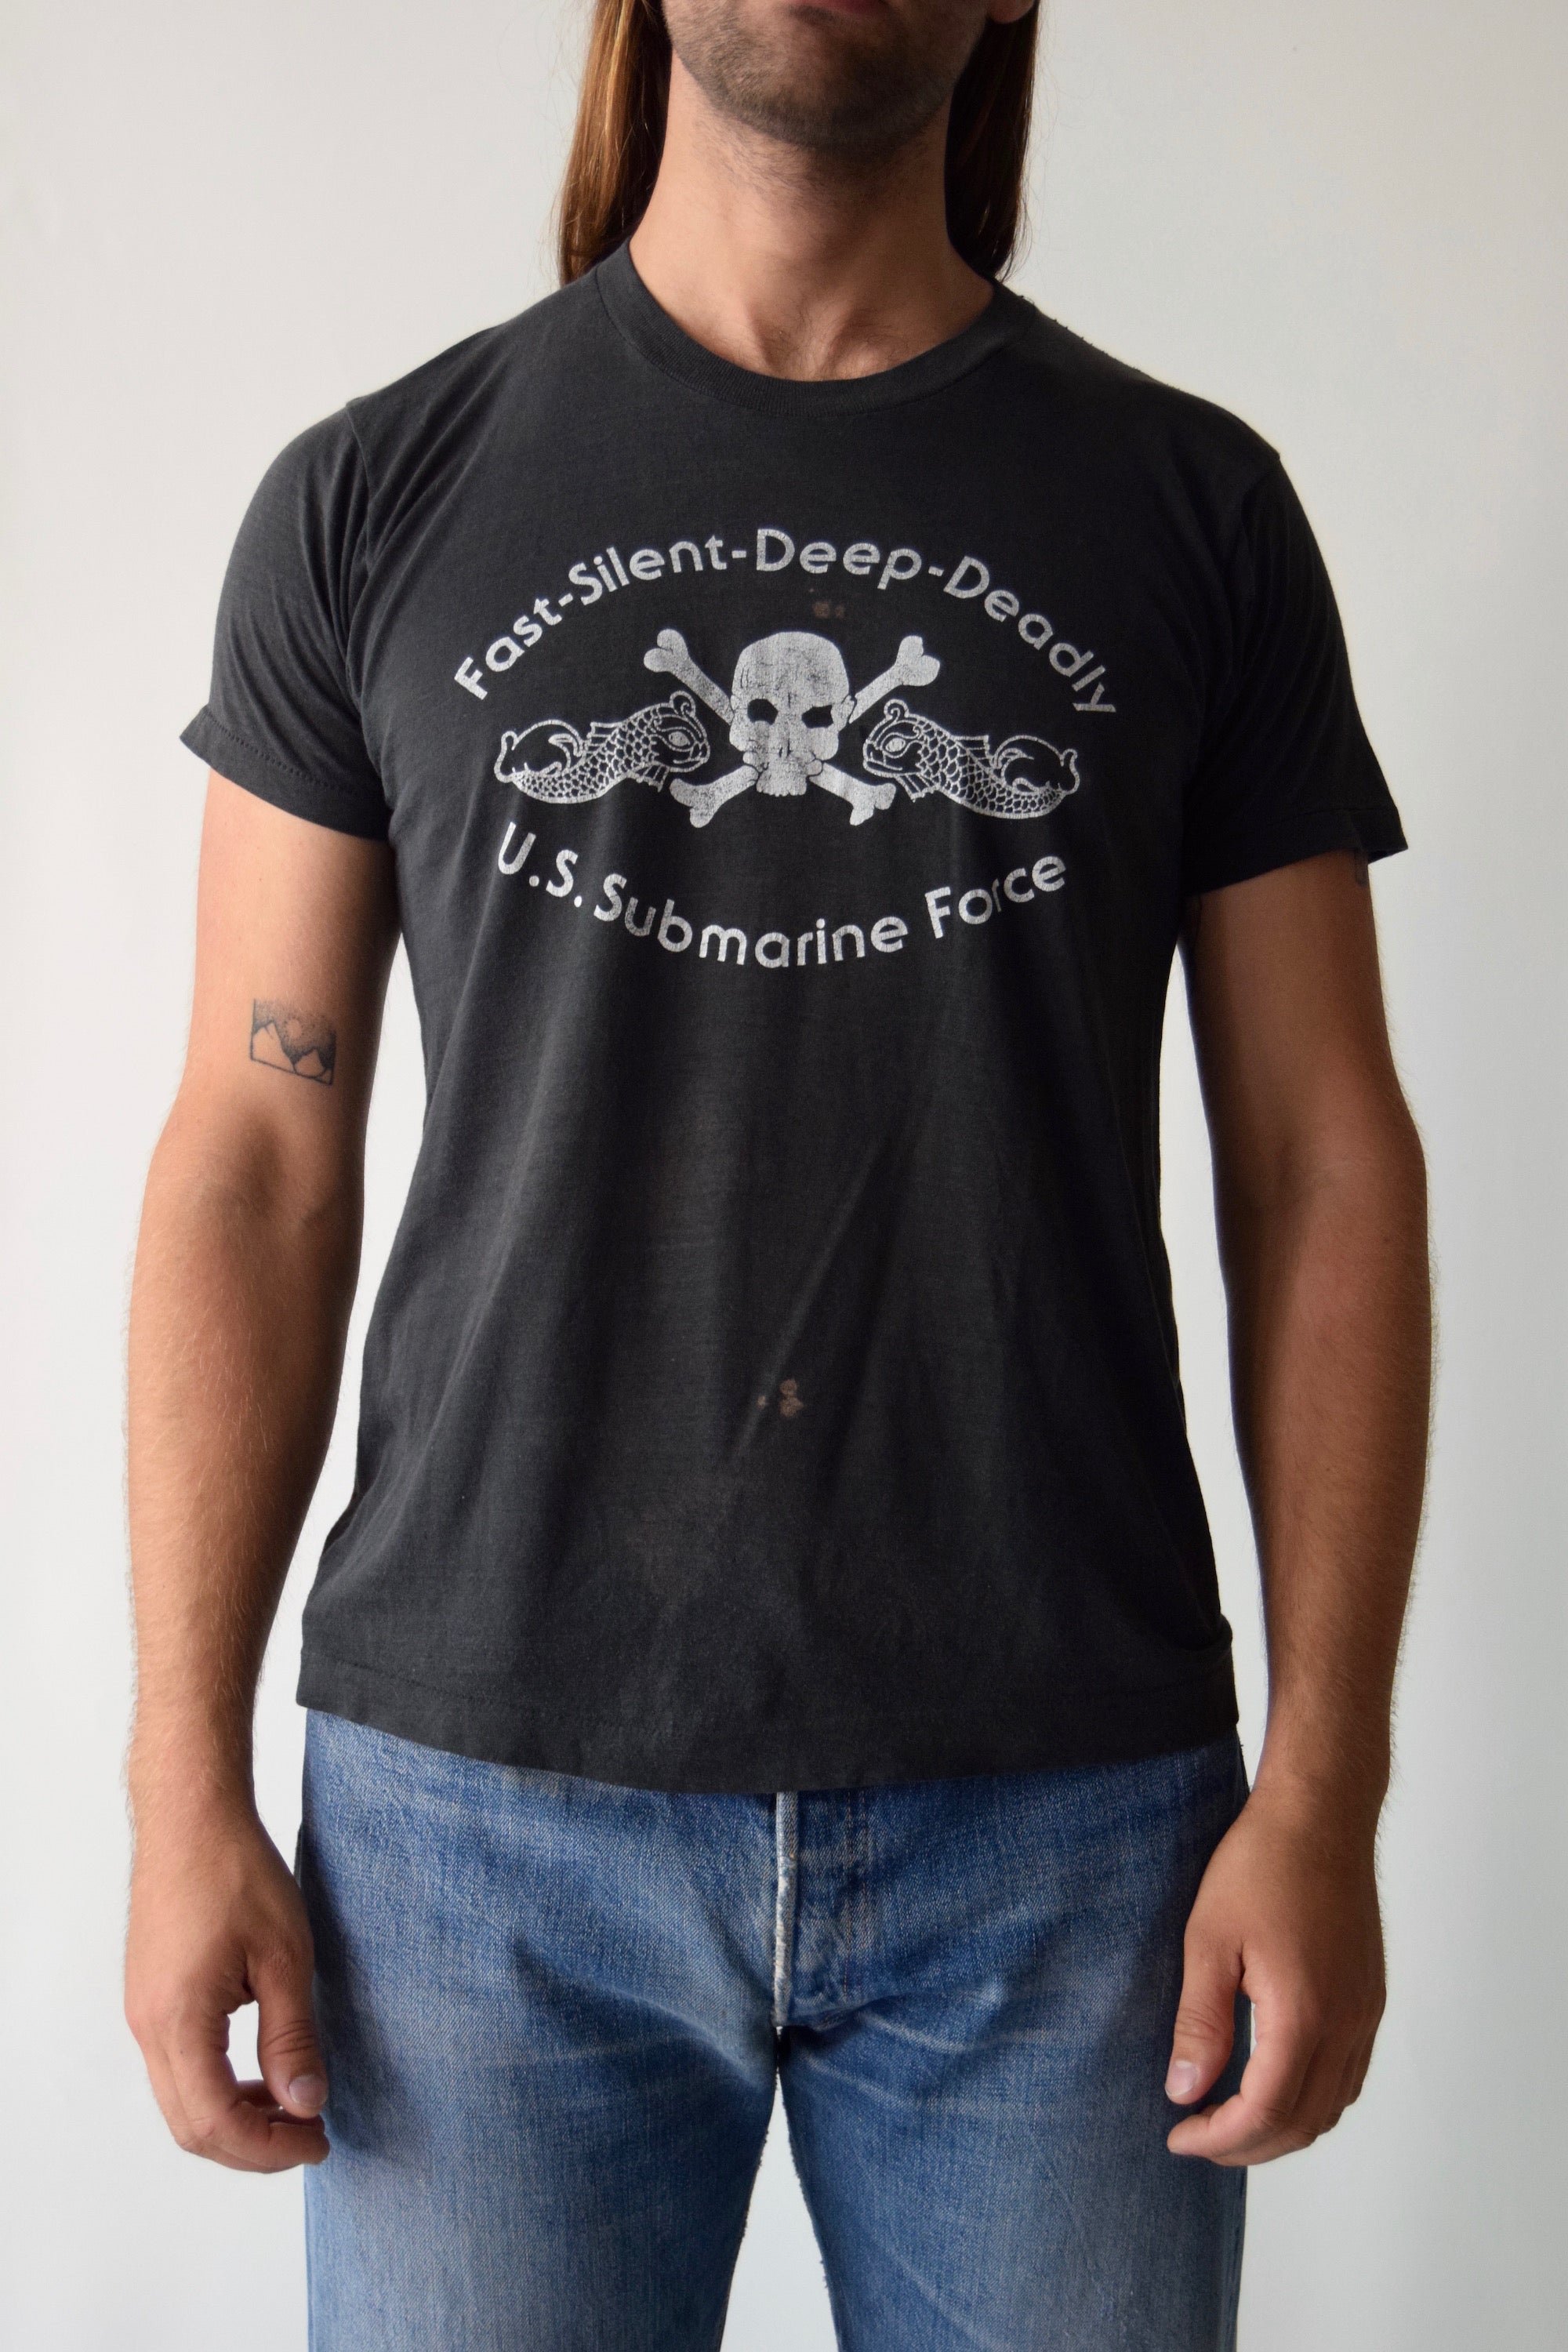 Vintage U.S. Submarine Force Skull & Bones T-Shirt FREE SHIPPING